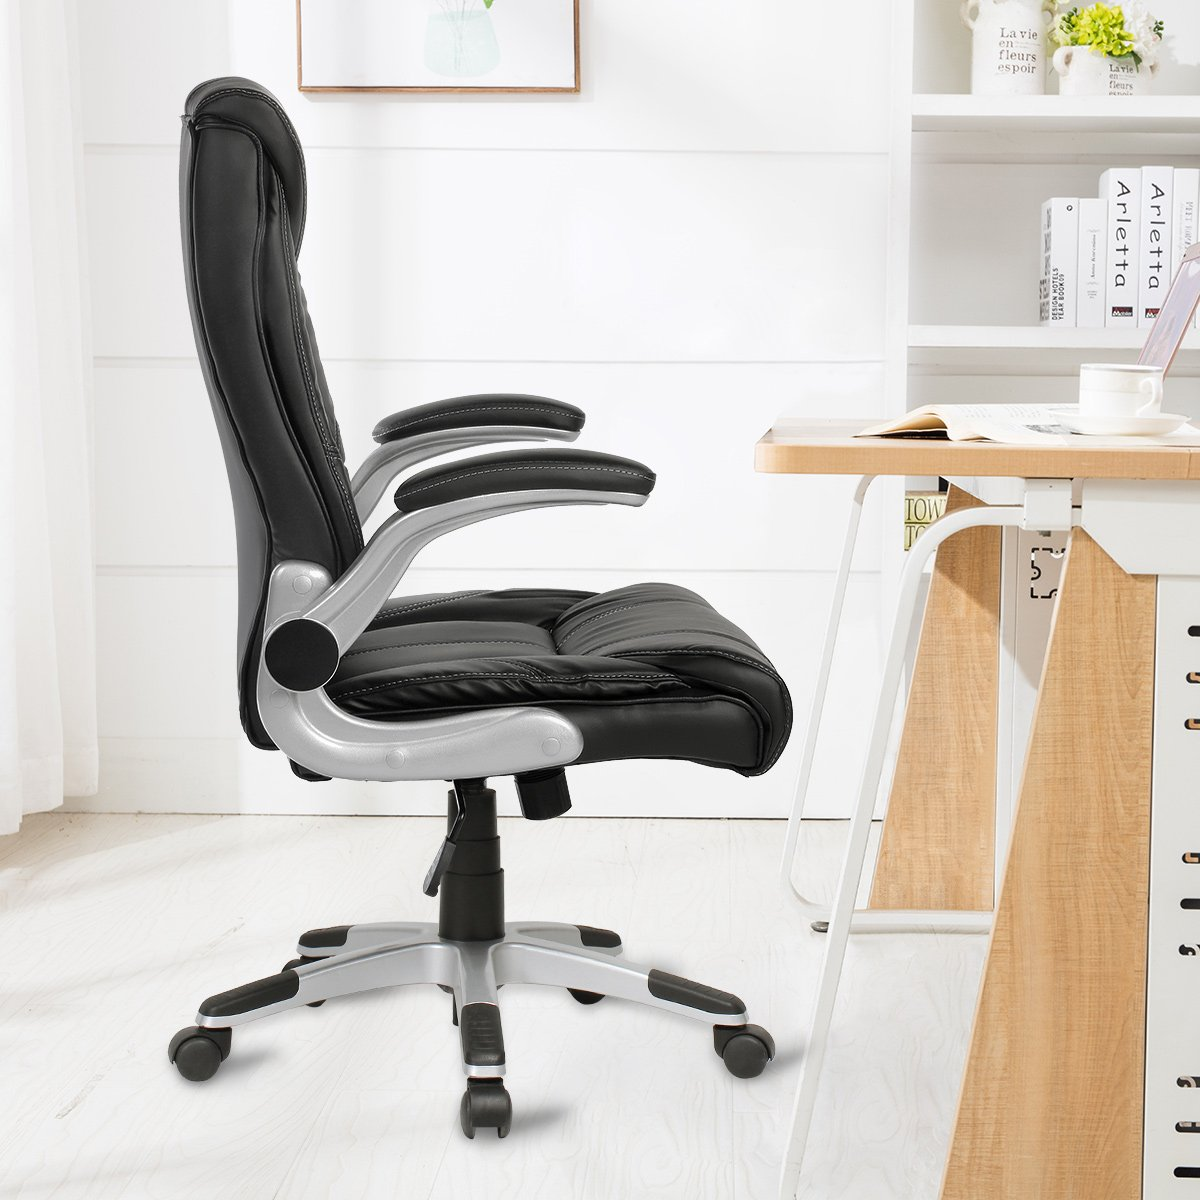 YAMASORO Ergonomic High-Back Executive Office Chair PU Leather Computer Desk Chair with Flip-up Arms and Back Support by YAMASORO (Image #4)